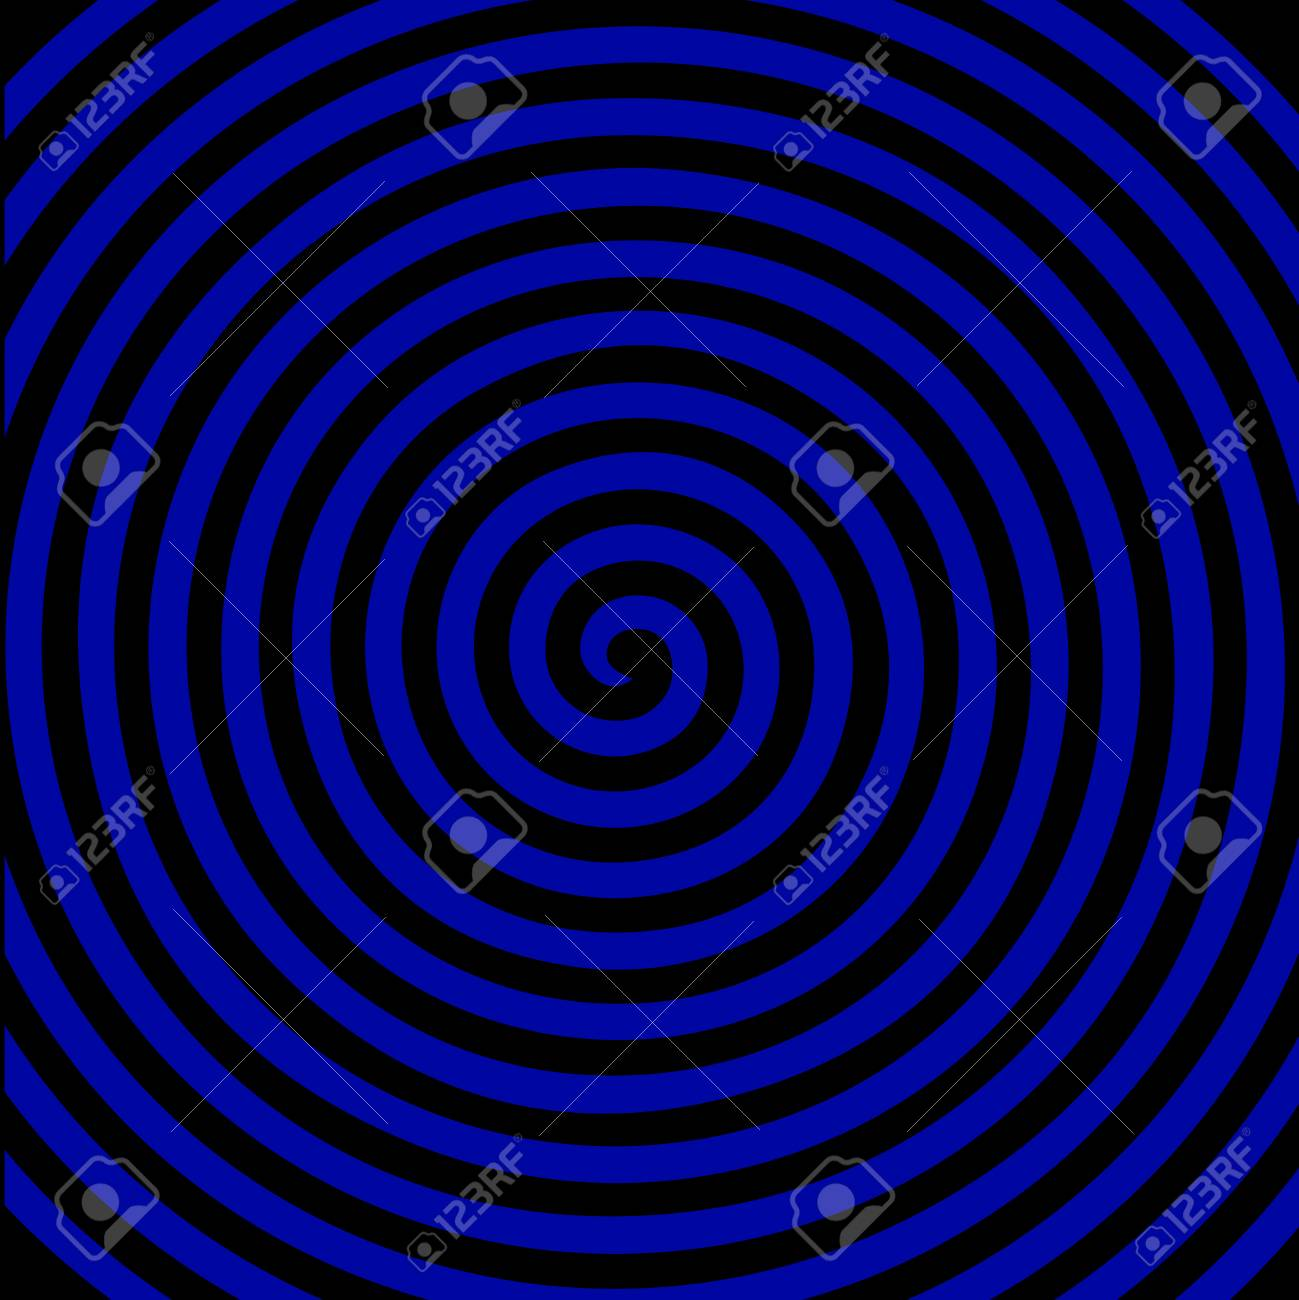 Black And Blue Round Abstract Vortex Hypnotic Spiral Wallpaper